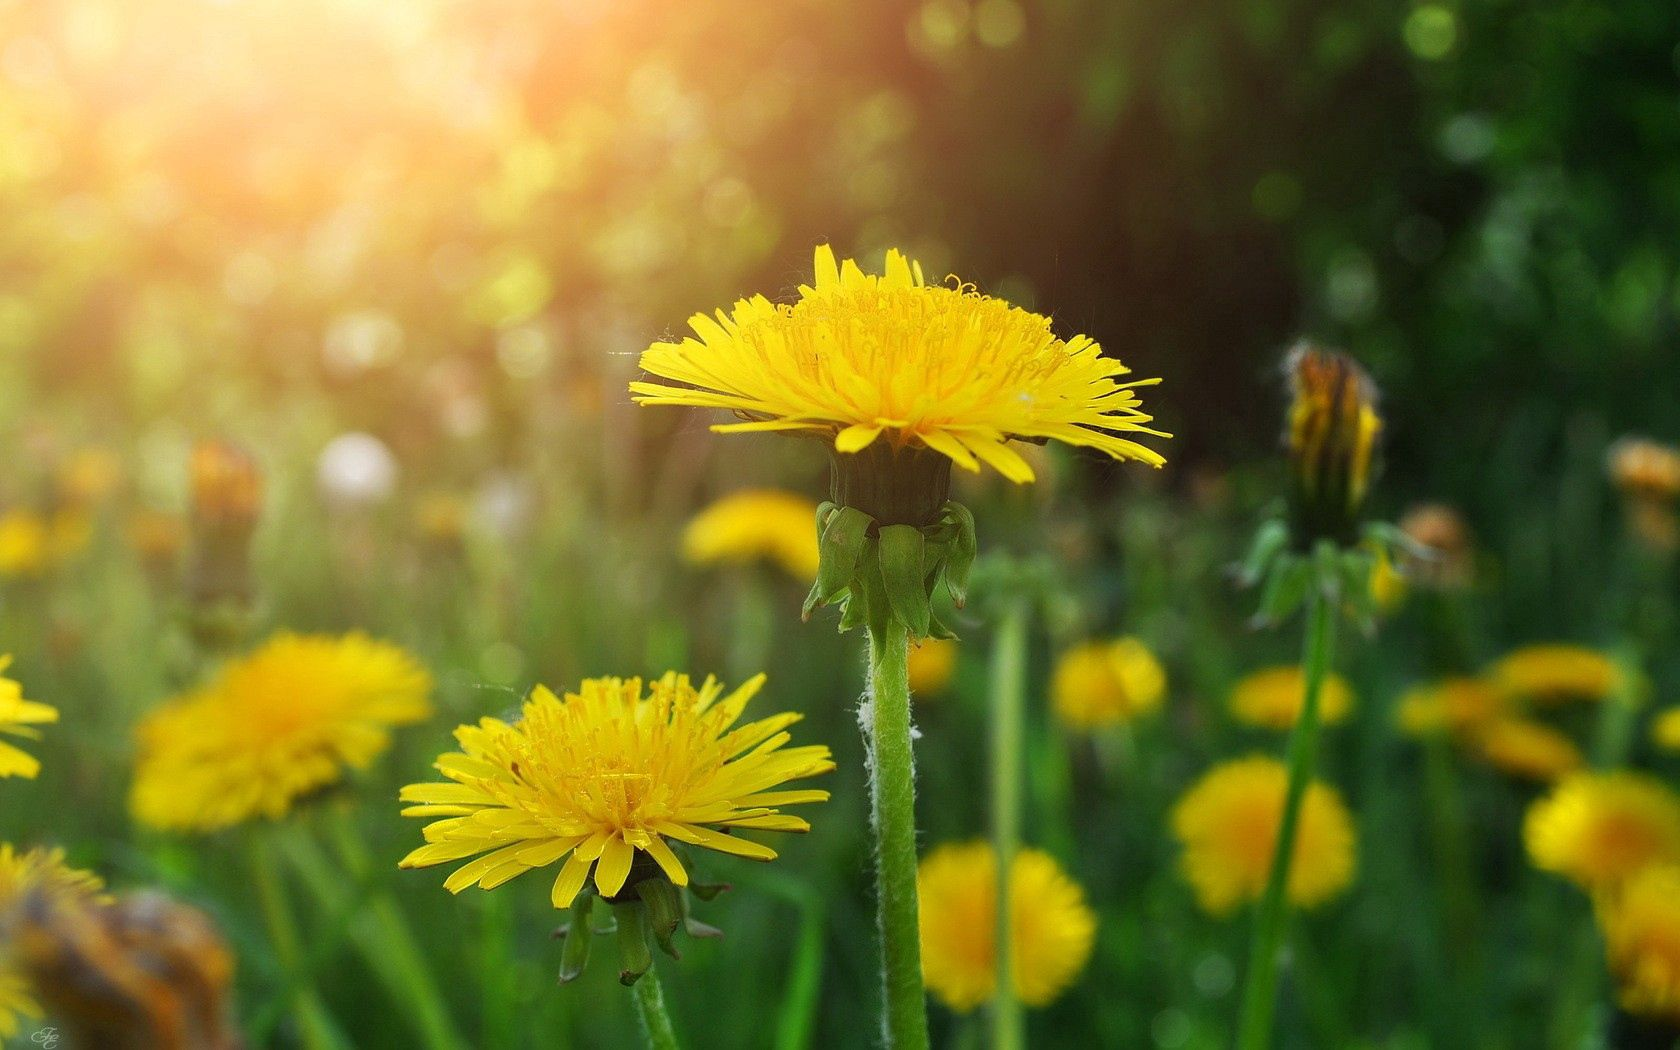 86244 download wallpaper Flowers, Dandelions, Close-Up, Greens, Polyana, Glade screensavers and pictures for free